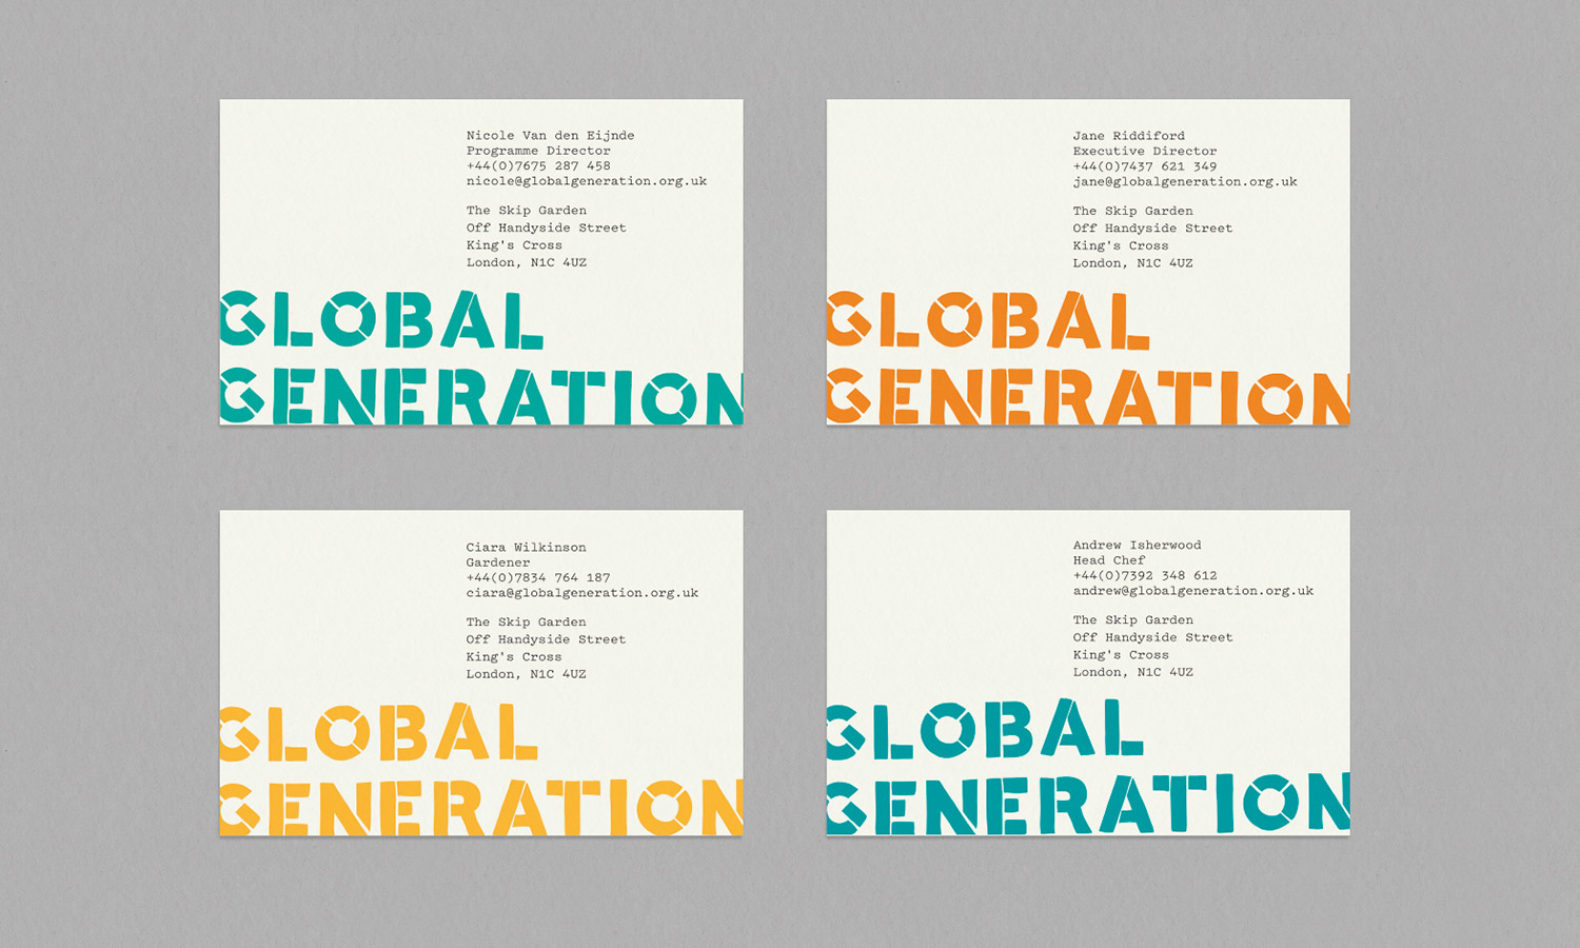 Global Generation branding used on their business cards.